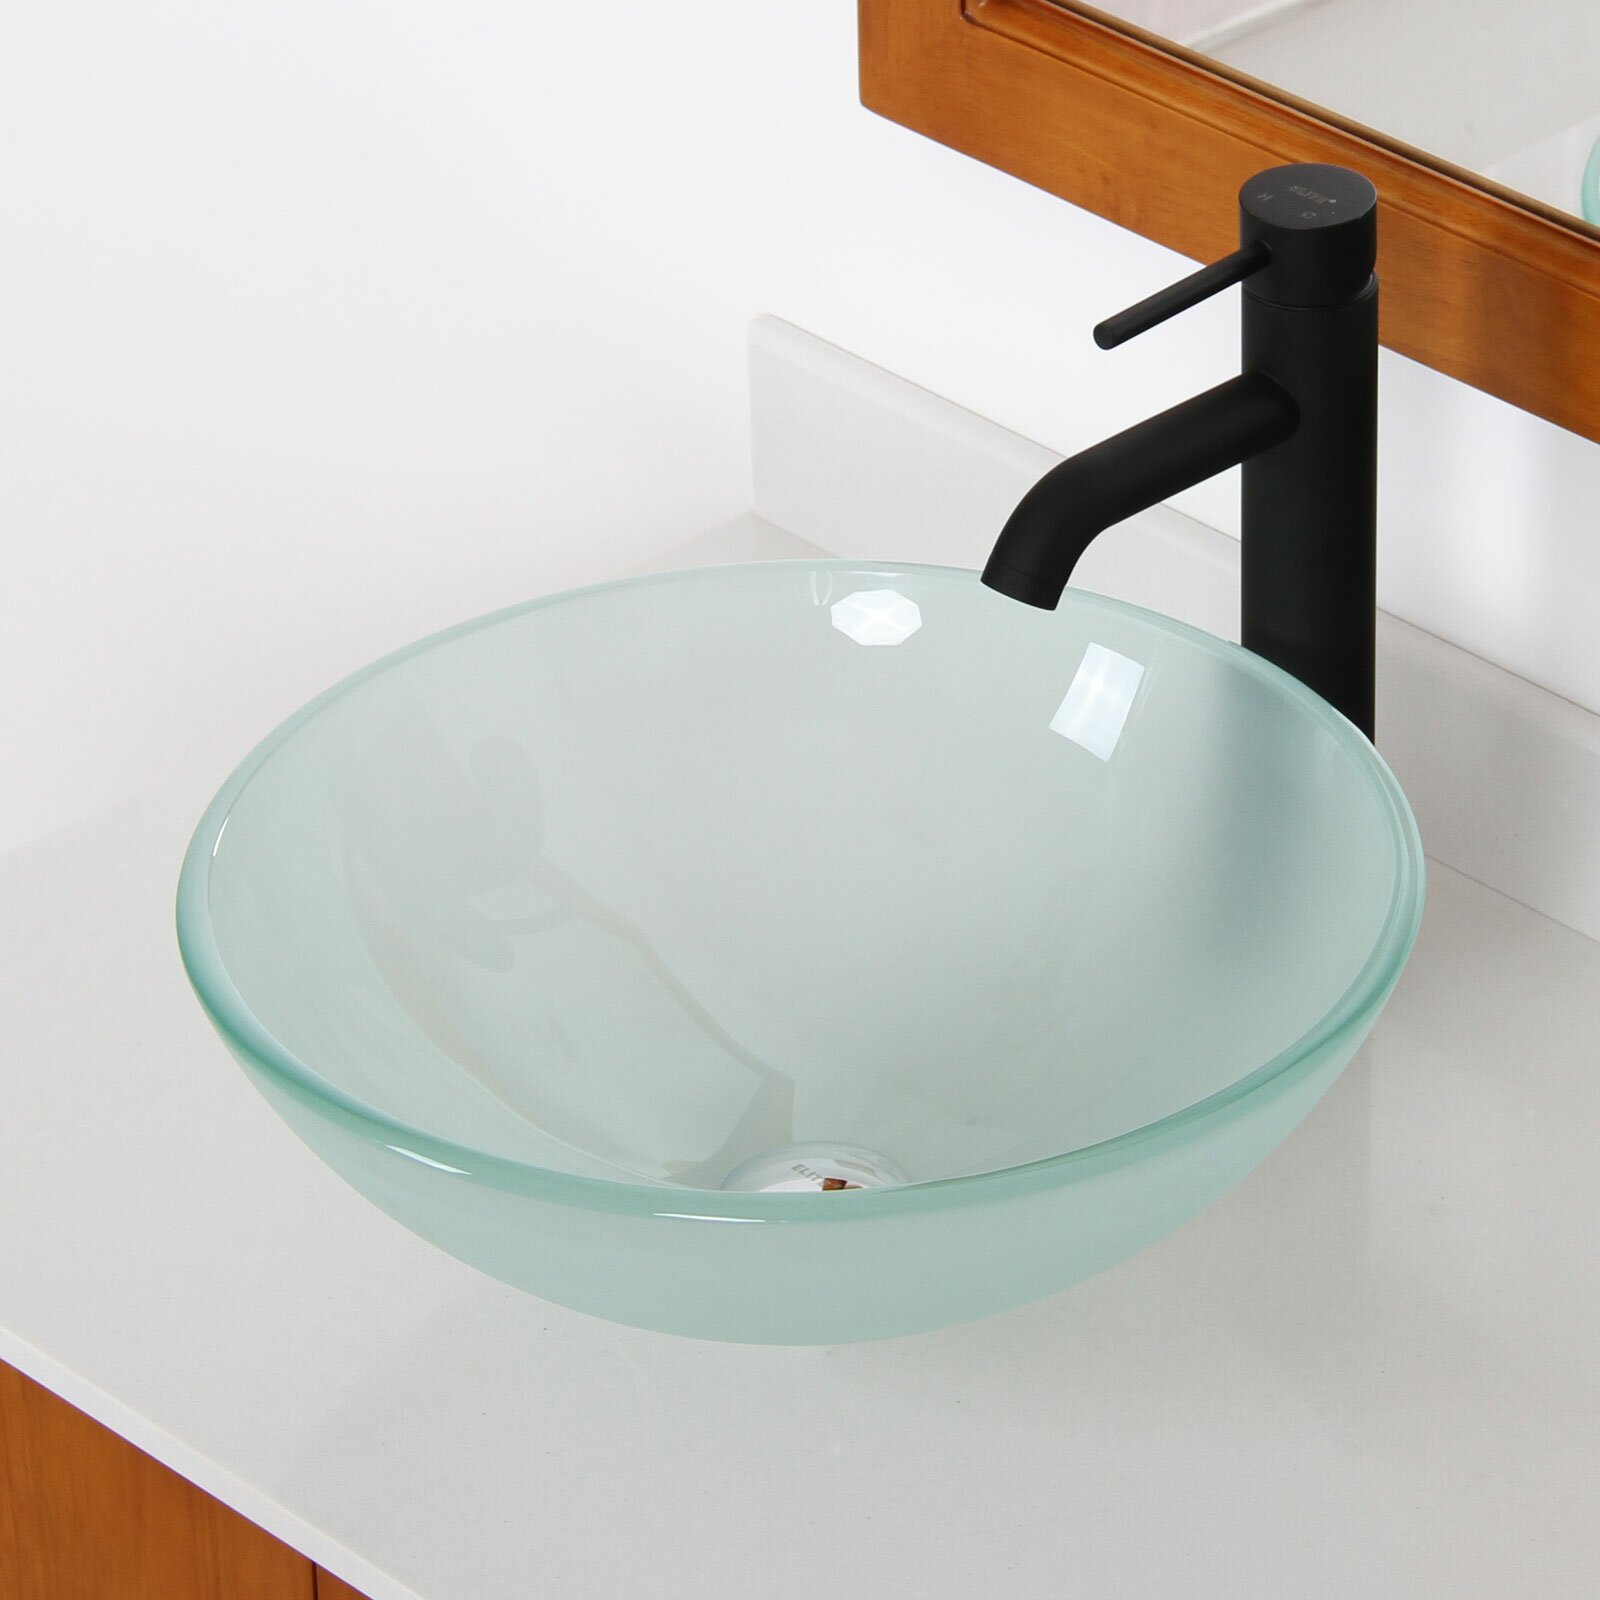 elite double layered tempered glass round bowl vessel